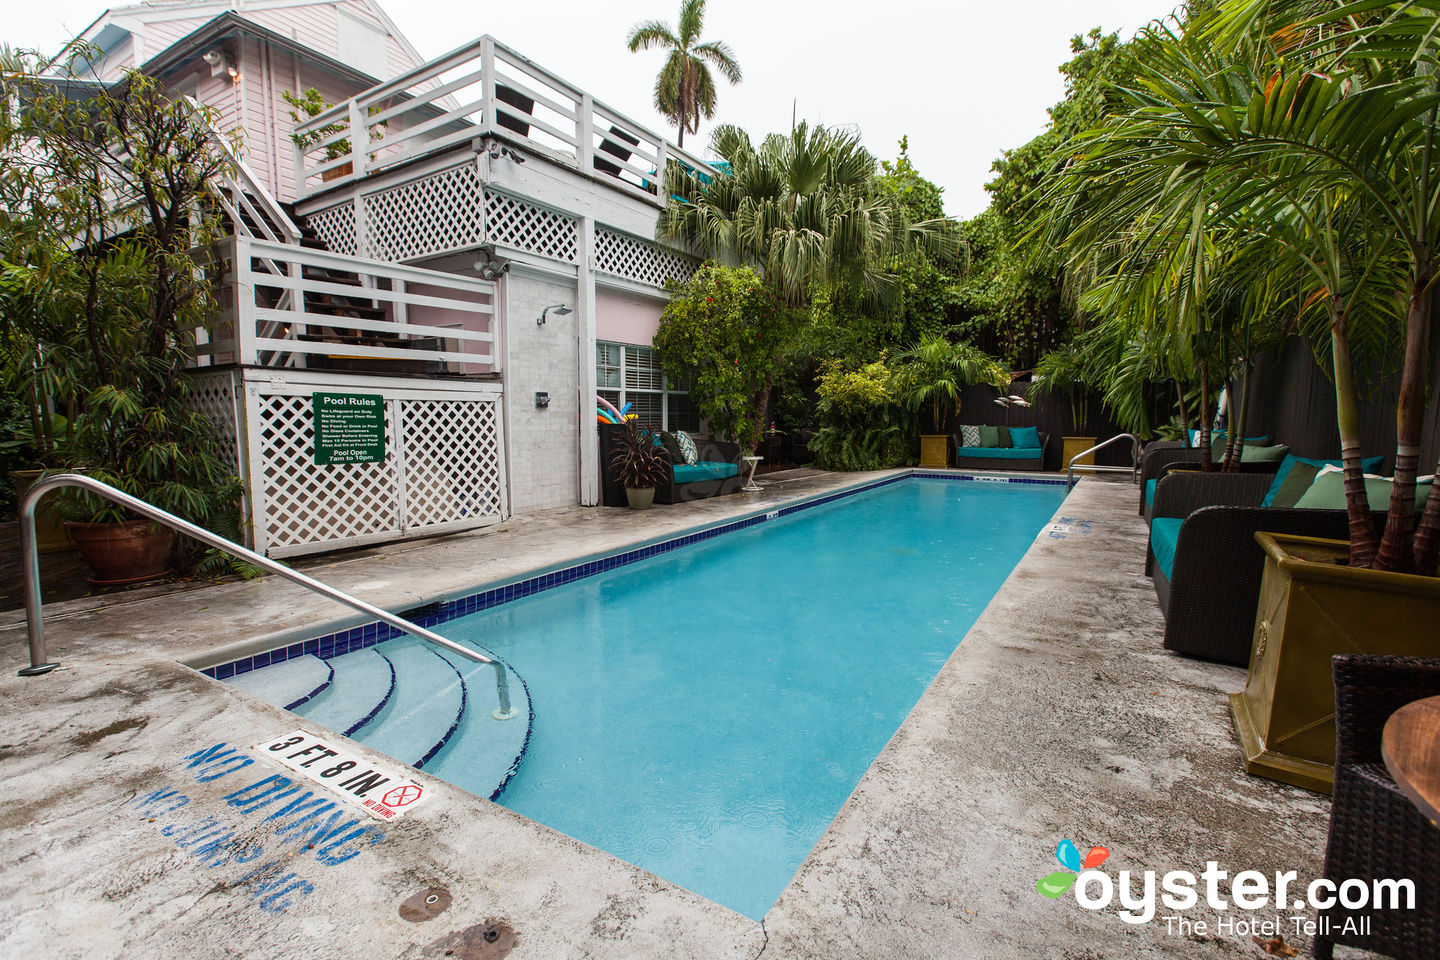 cypress house hotel key west review